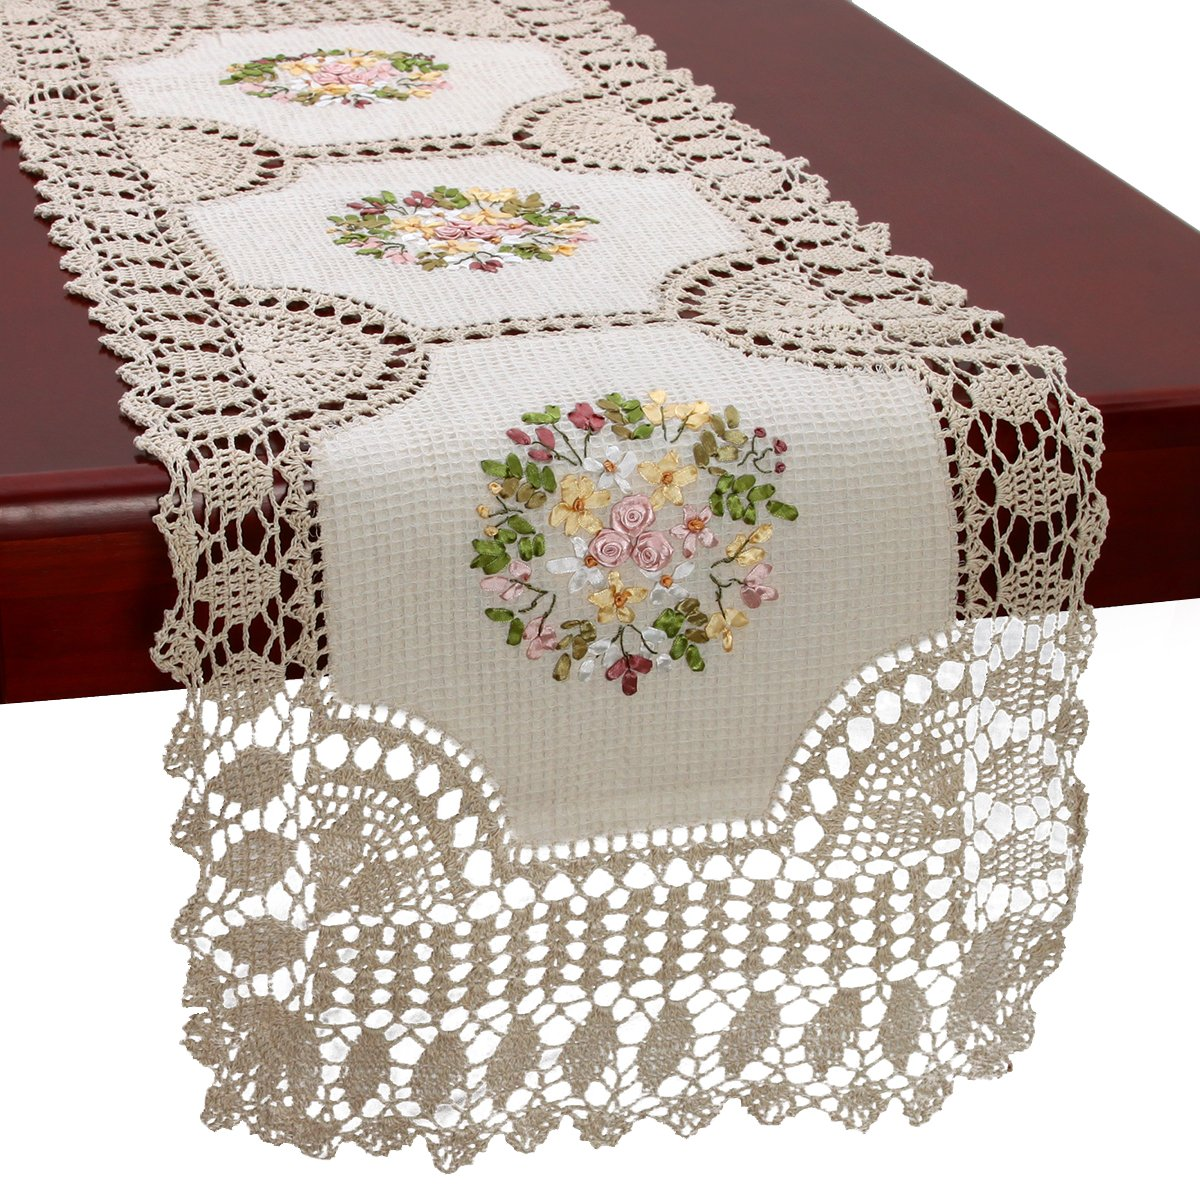 GRELUCGO Handmade Crochet Cotton Lace Table Runner And Dresser Scarf, Ribbon Embroidery, Rectangle16x45 Inches